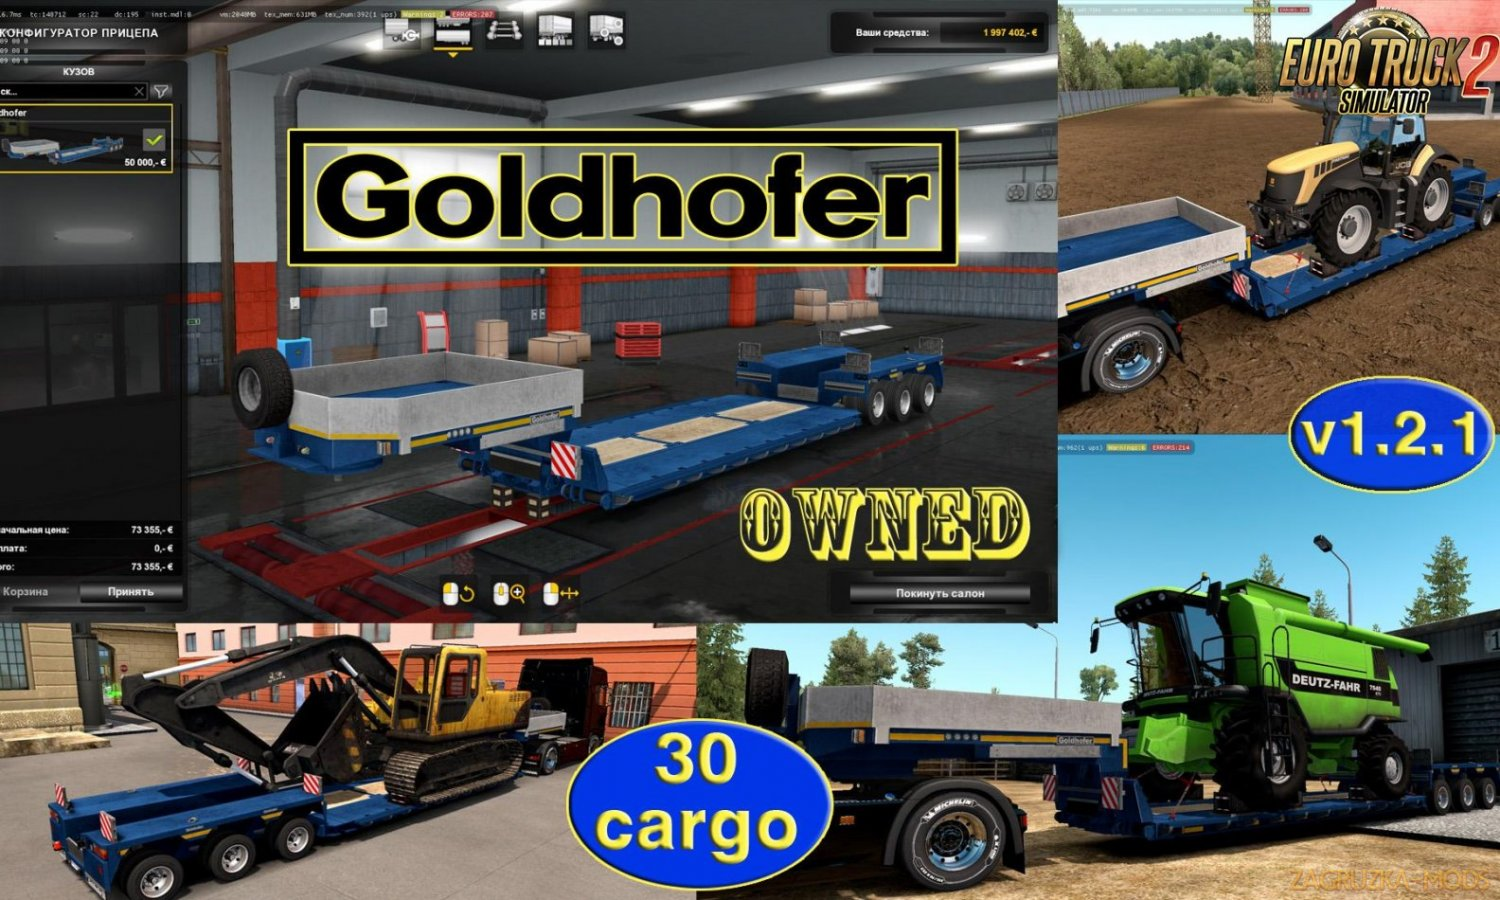 Ownable trailer Goldhofer v1.2.1 by Jazzycat